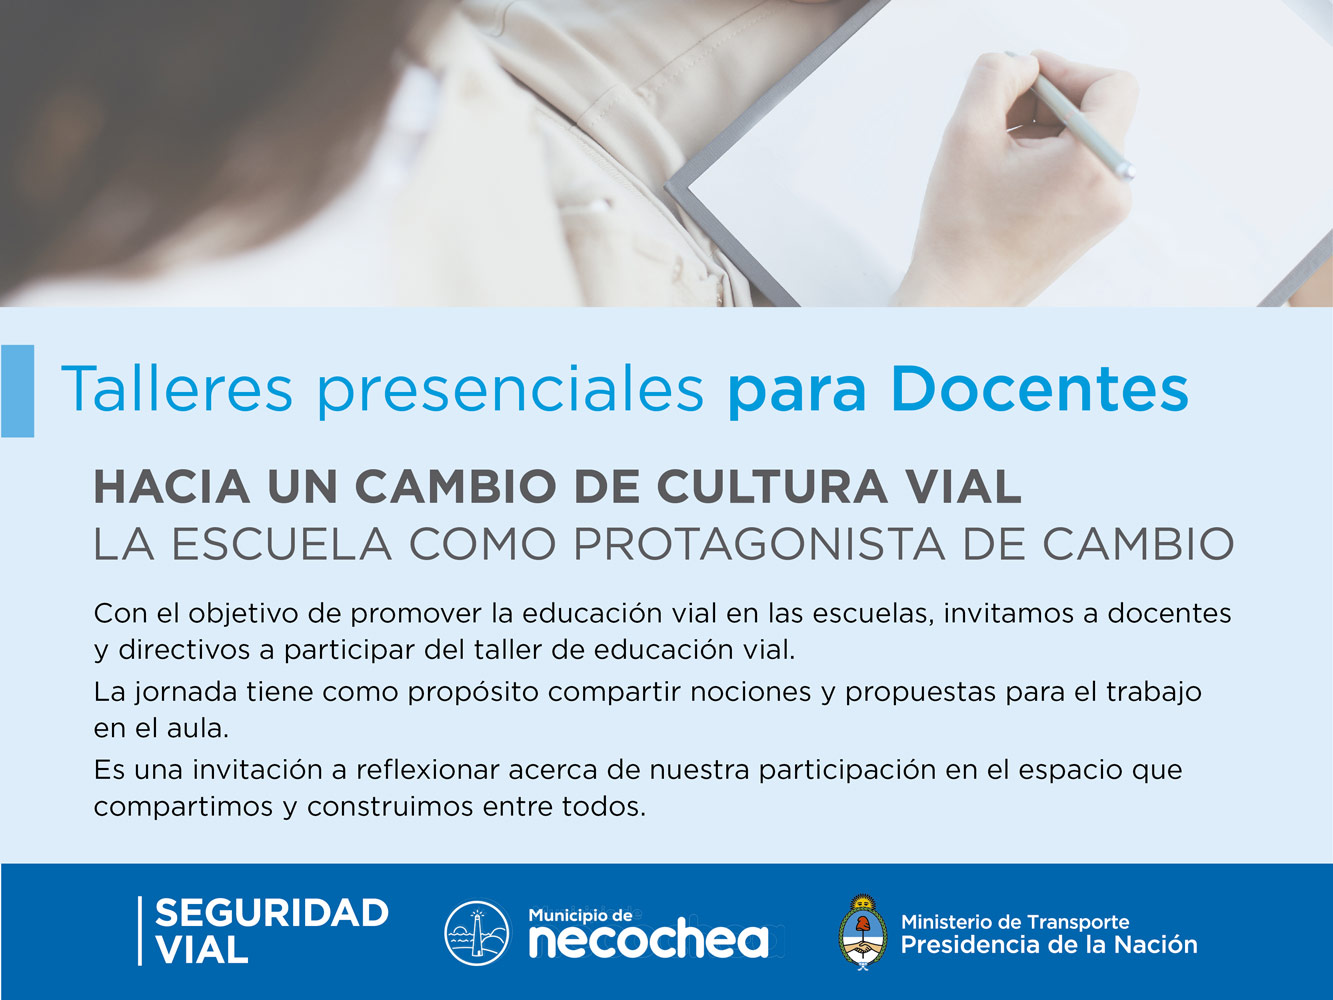 05-05-AFICHE-Talleres-docentes